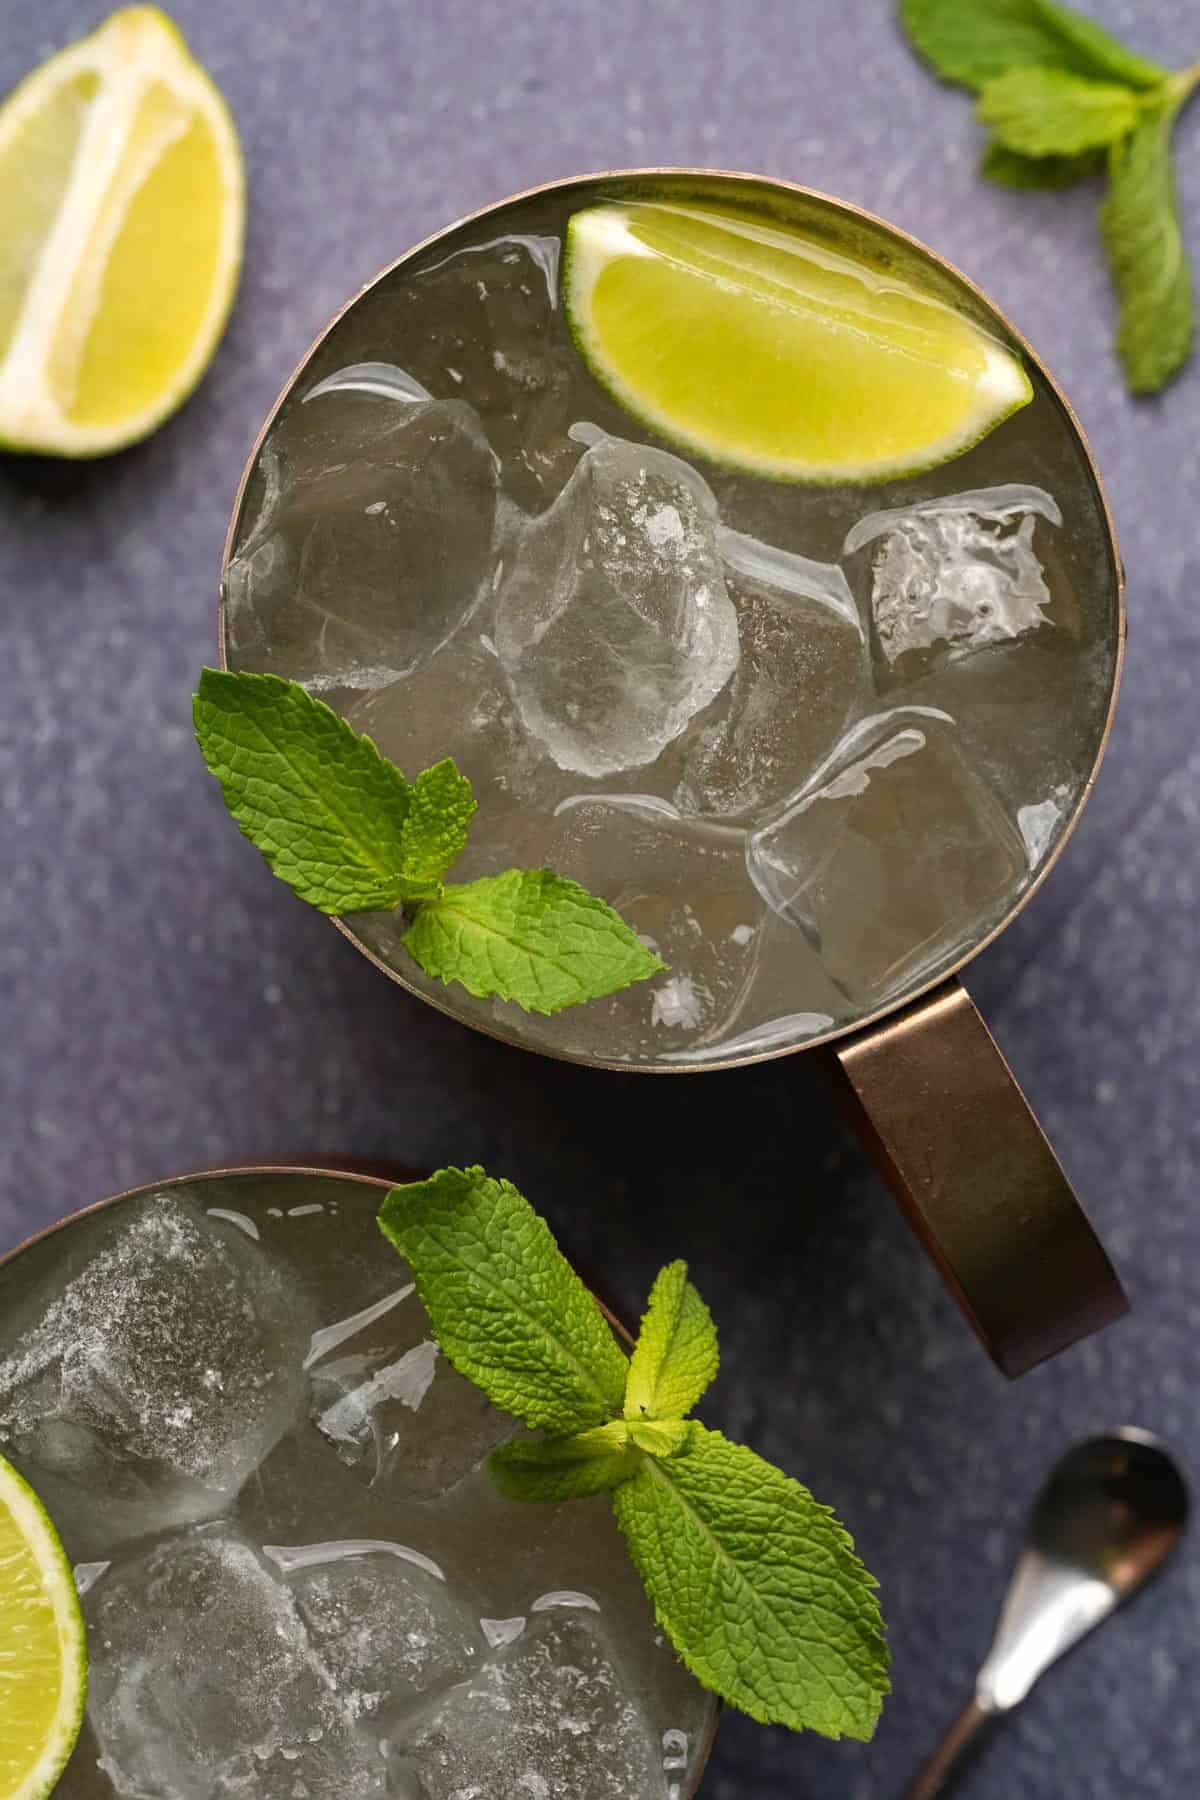 Moscow mule served in a copper mug with a wedge of lime and fresh mint leaves.